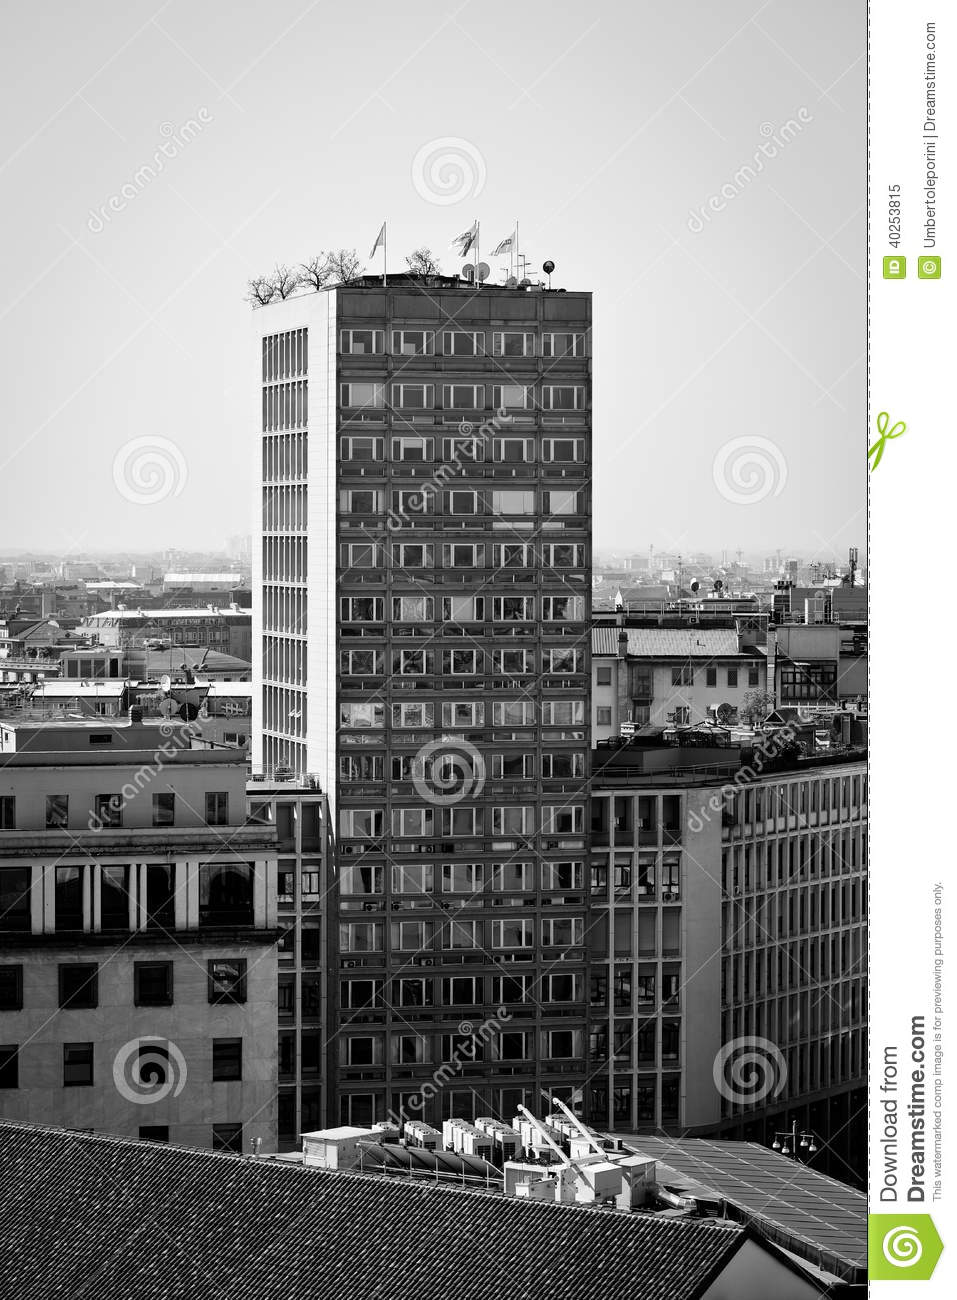 Milan Lombardy Italy  April 24 2014 Milan City Building Editorial Image  Image of terrazza